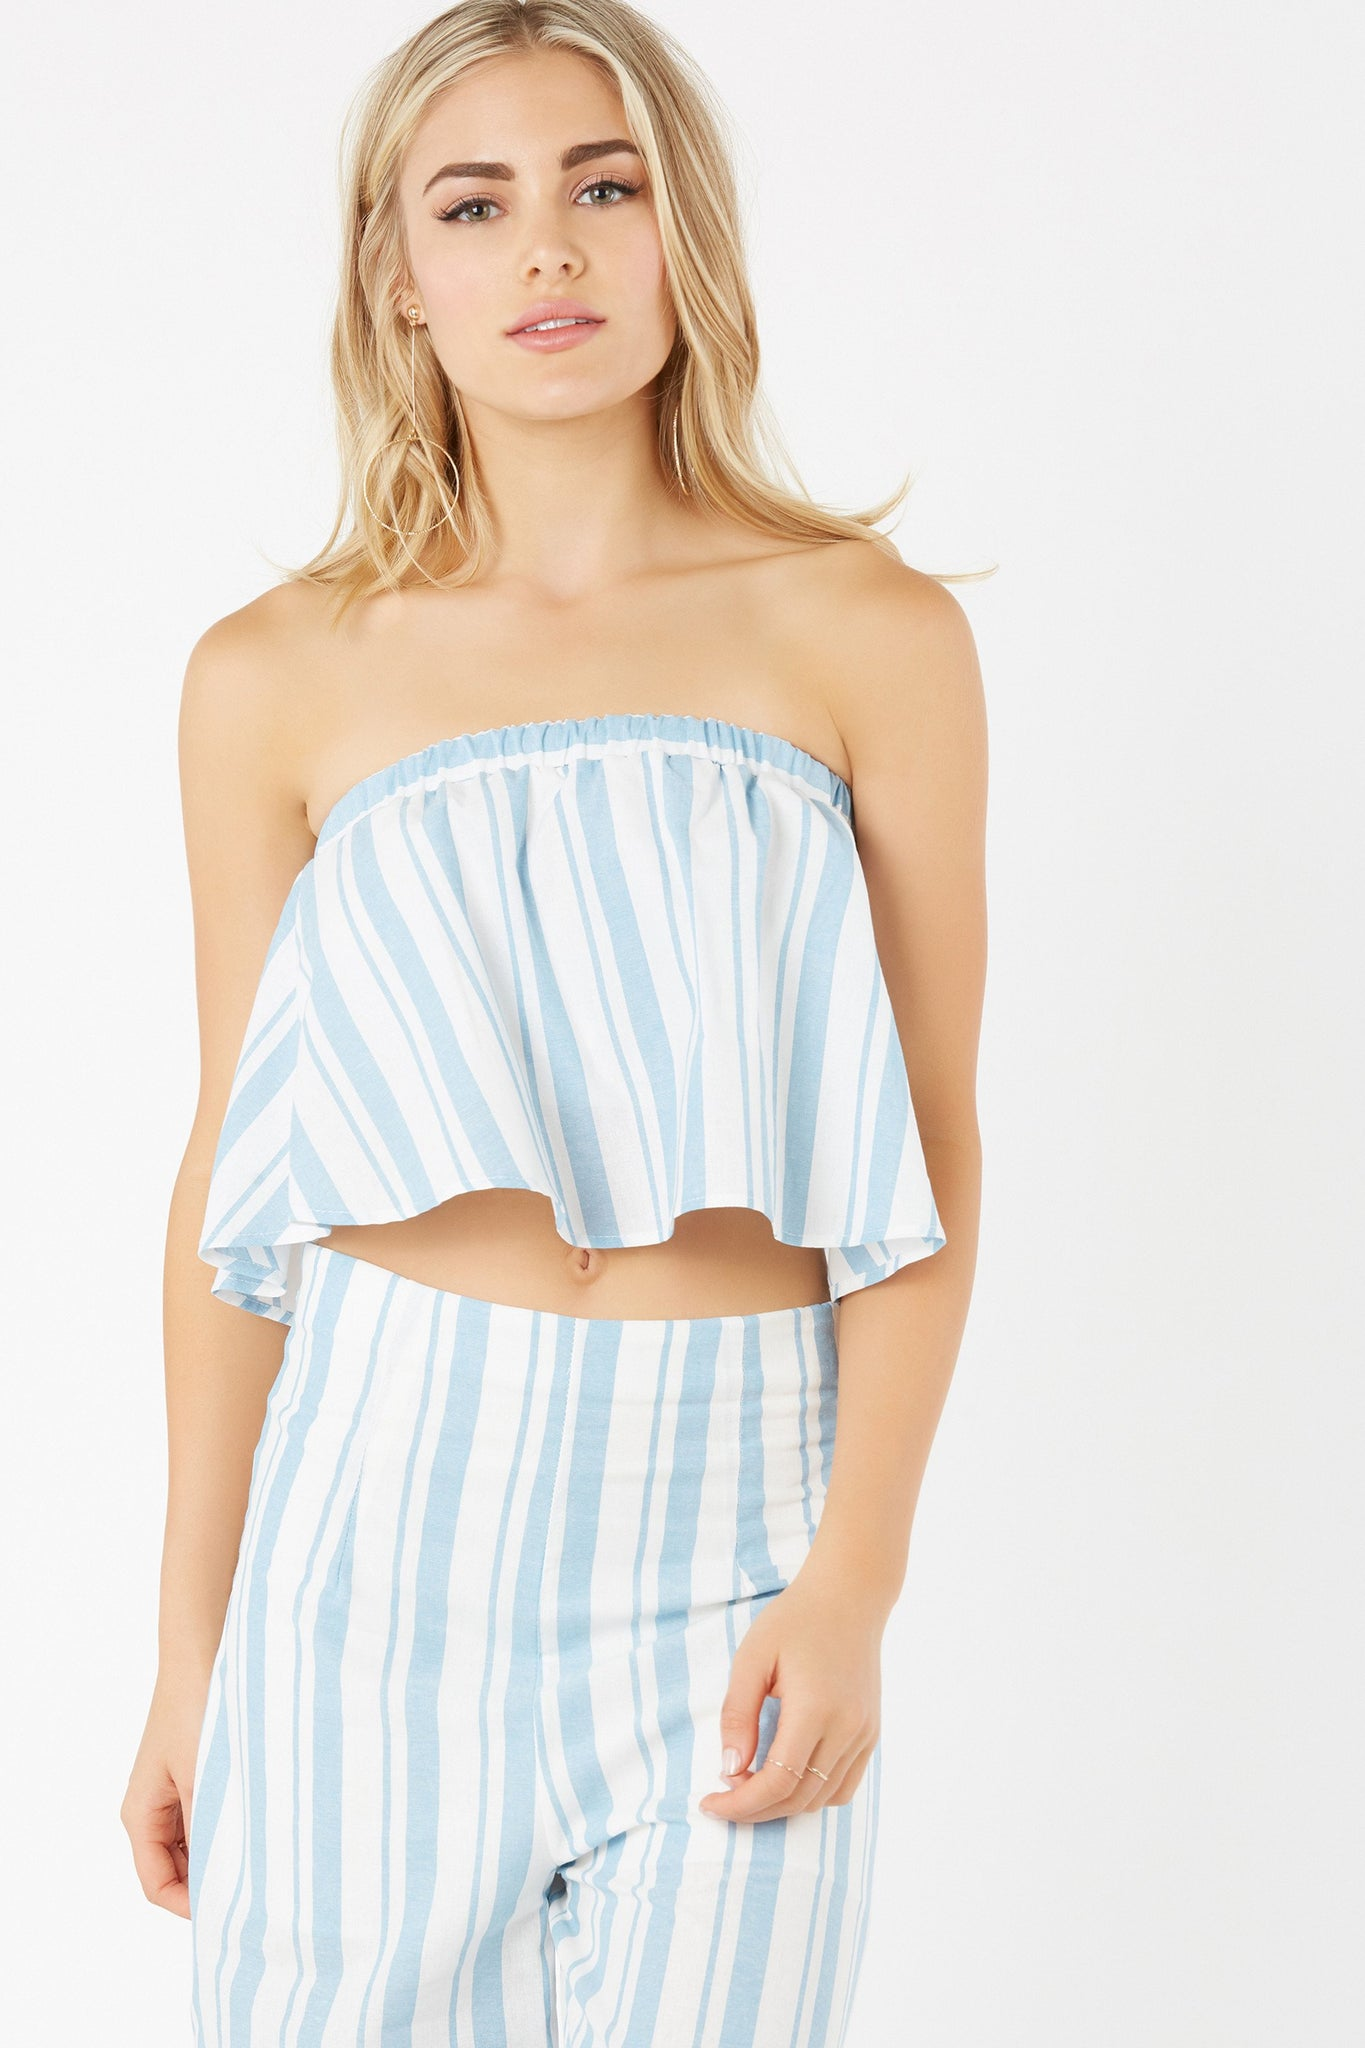 Sleeveless tube top with stripe pattern throughout. Smooth lining with elasticized band for fit.